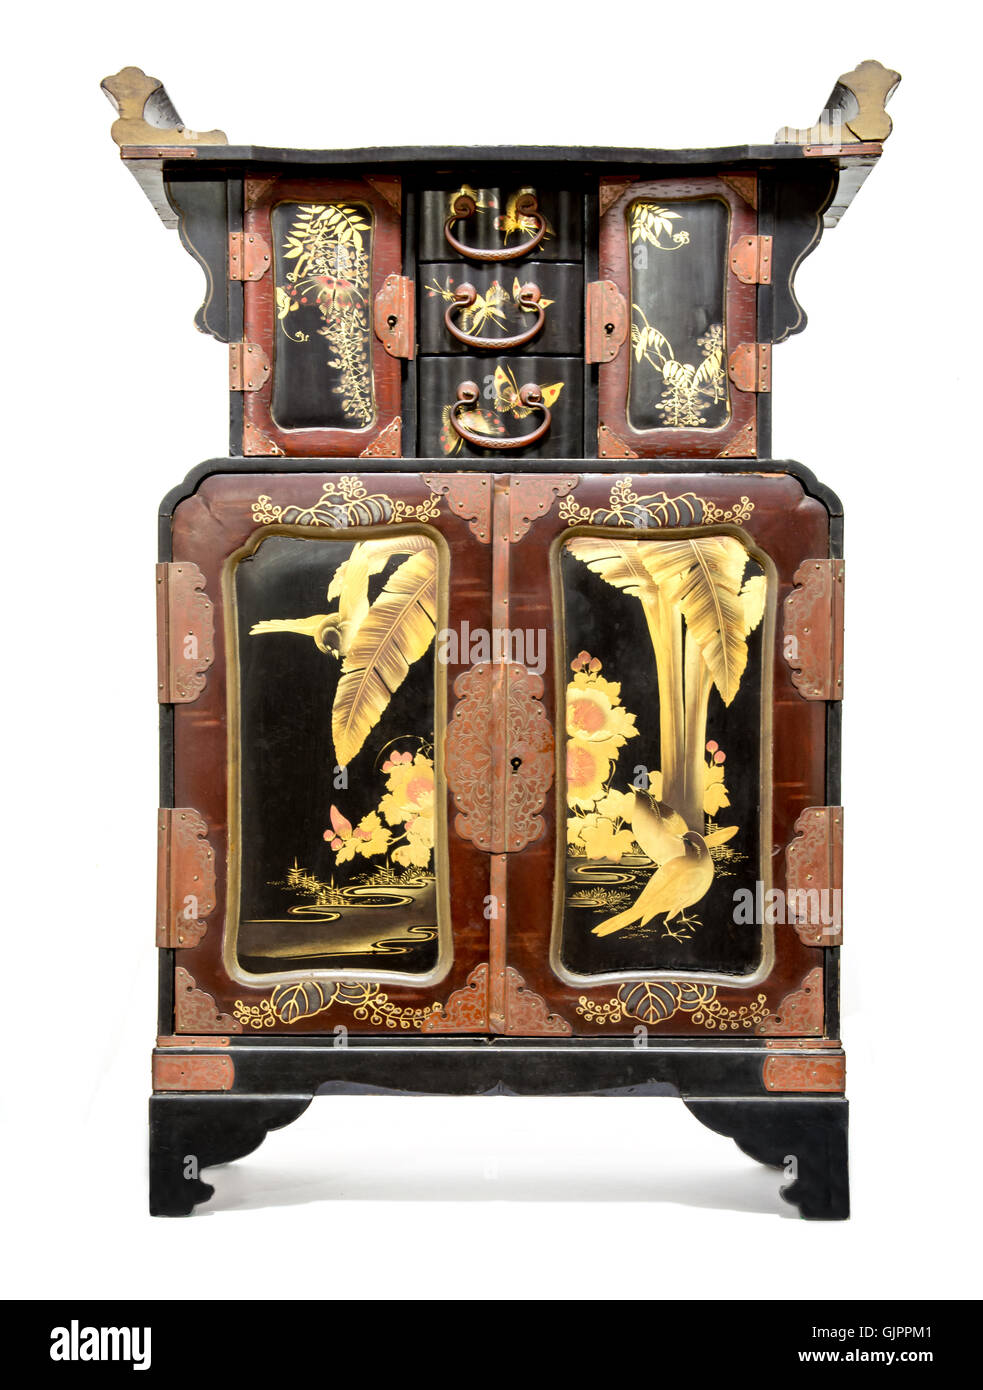 Antique Japanese Black Lacquer and Gold Table Cabinet. - Stock Image - Japan Japanese Furniture Antique Stock Photos & Japan Japanese